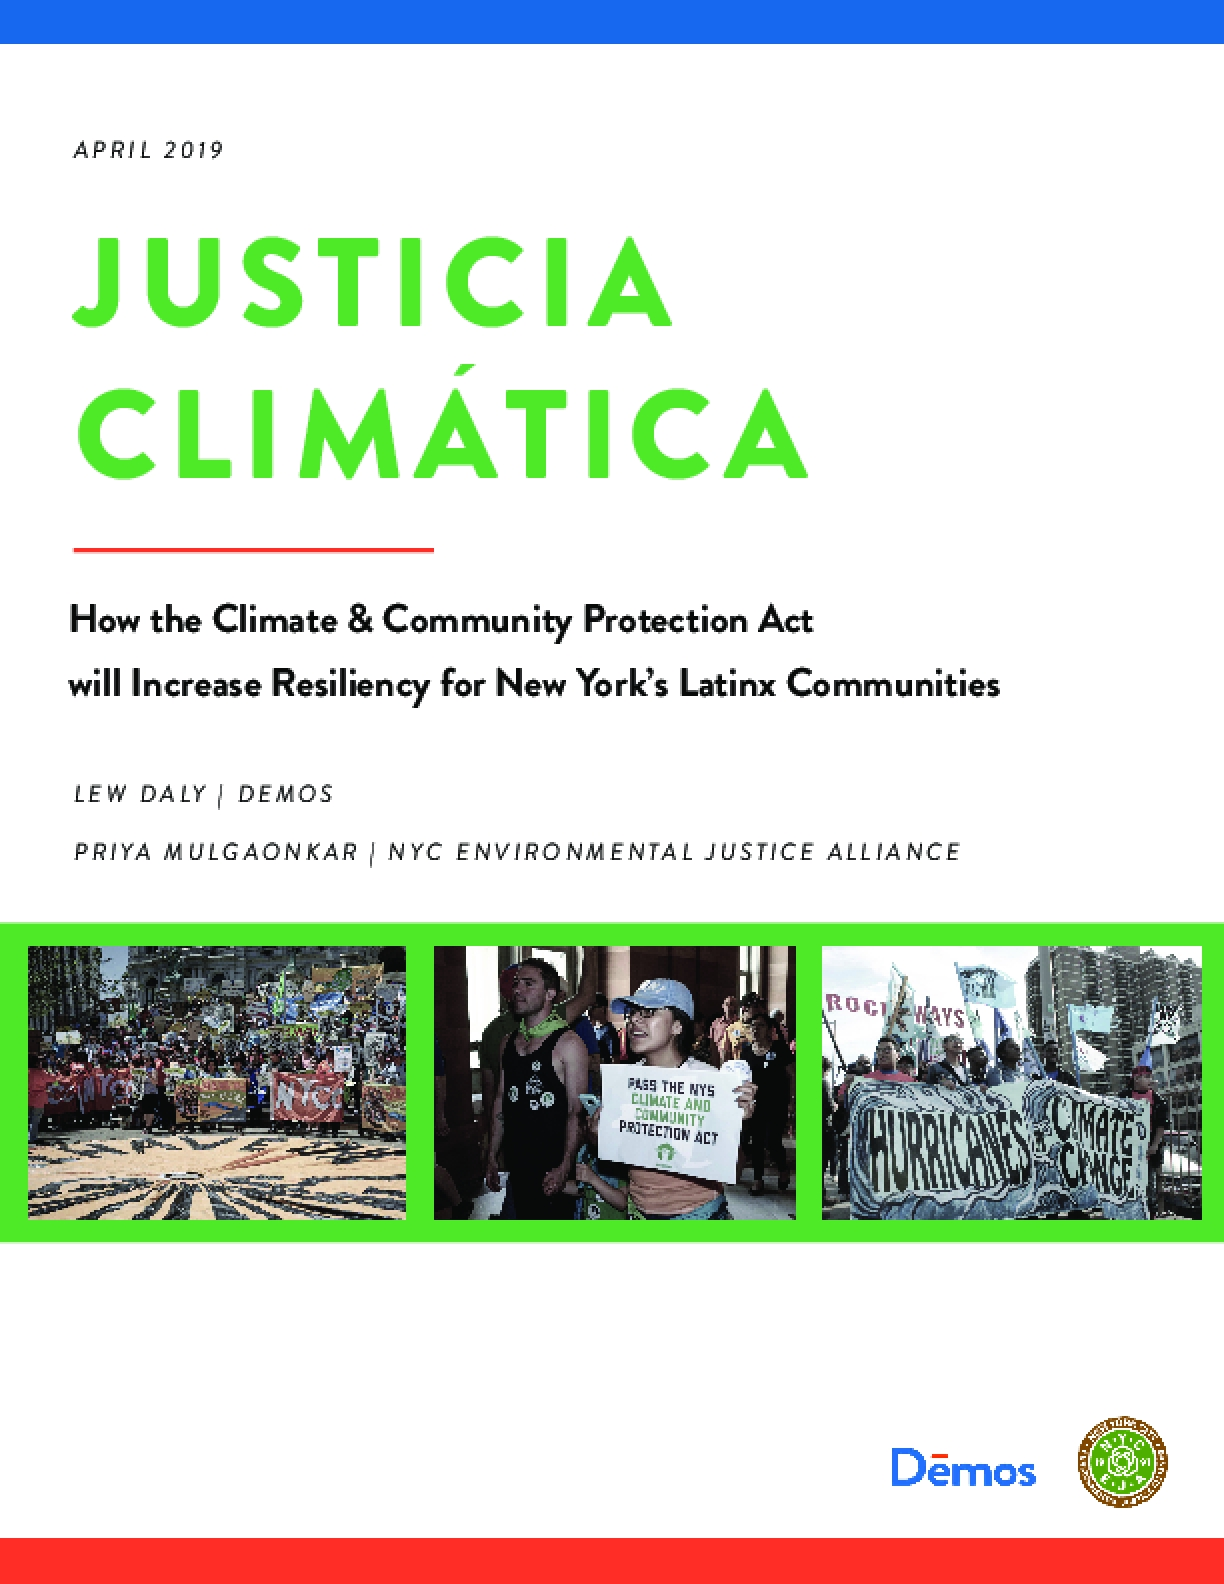 Justicia Climatica: How the Climate & Community Protection Act will Increase Resiliency for New York's Latinx Communities